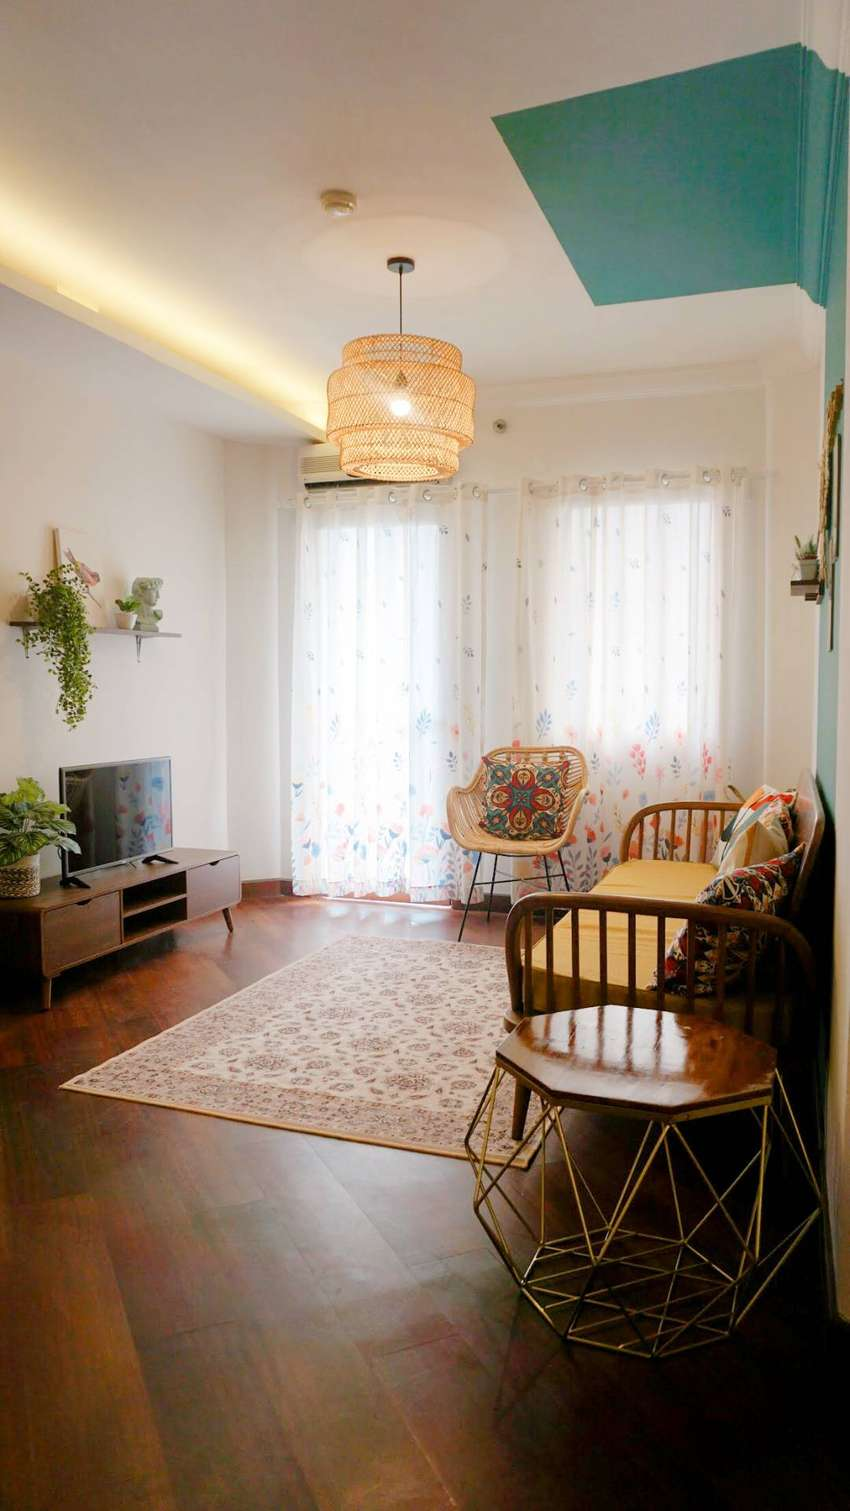 HARIAN 900RB THE MAJESTY APARTEMENT BANDUNG